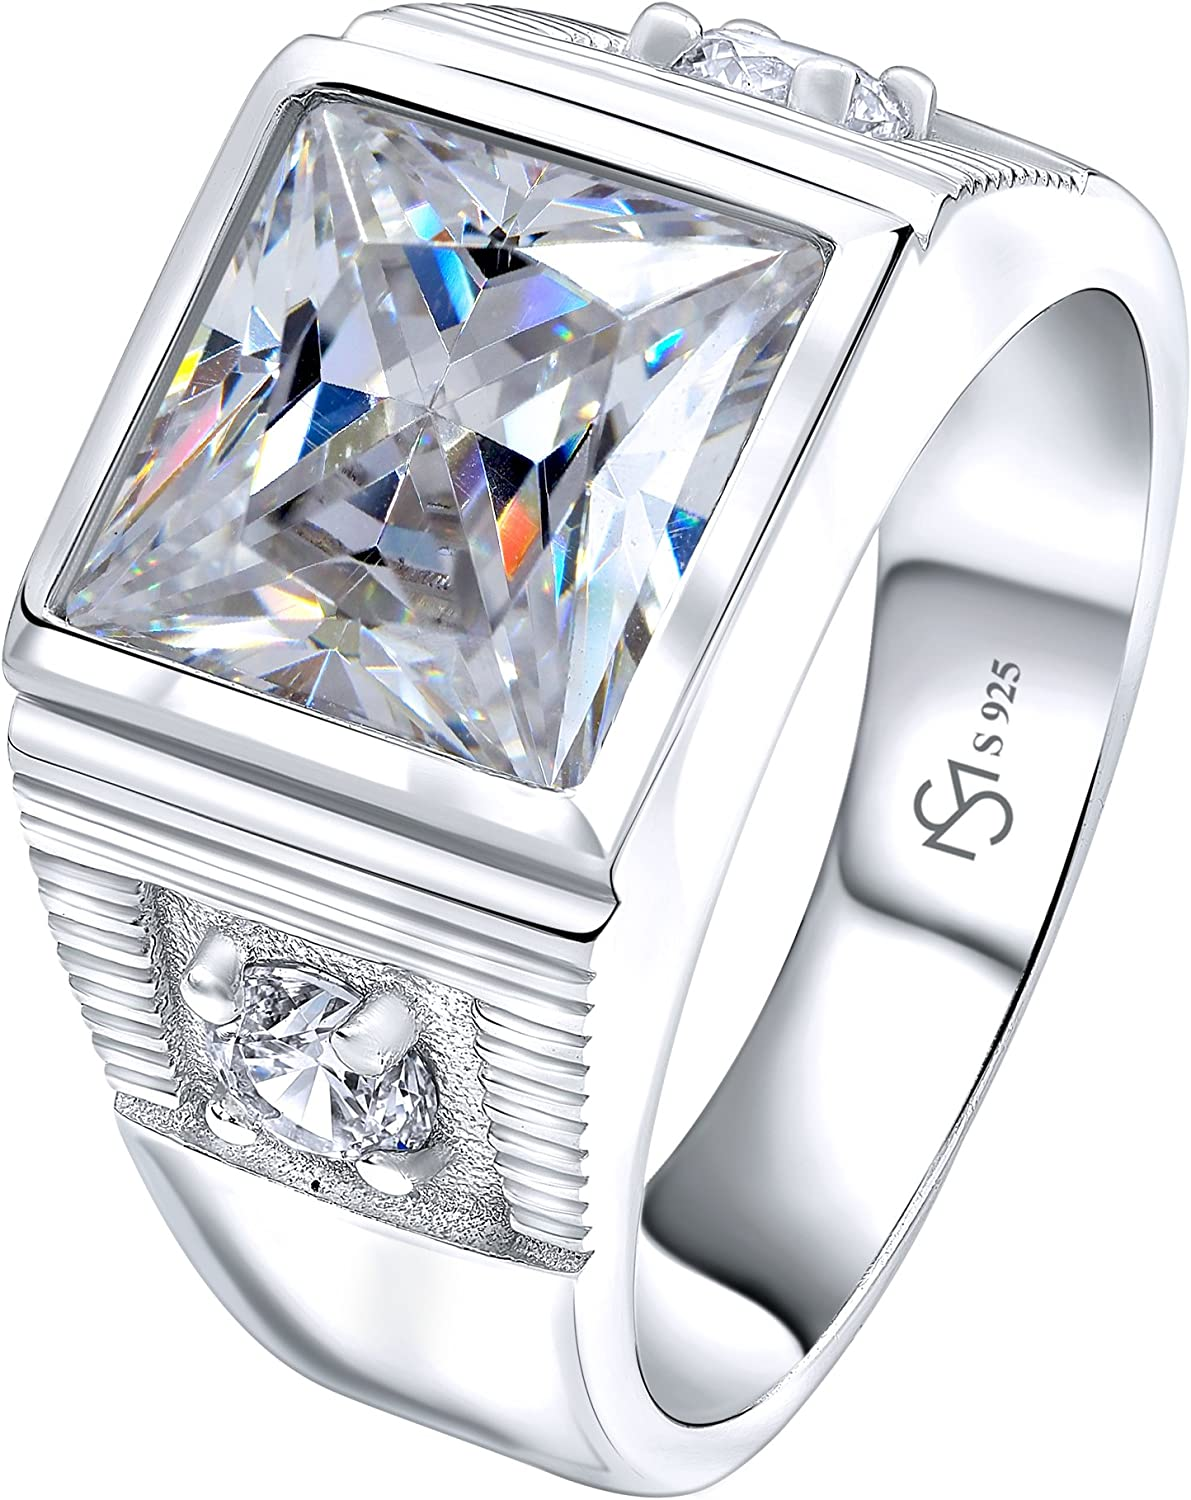 [2-5 Days Delivery] Men's Sterling Silver .925 Ring with 3.5ct White Princess Cut Center CZ Stone and 2 White Cubic Zirconia (CZ) Stones